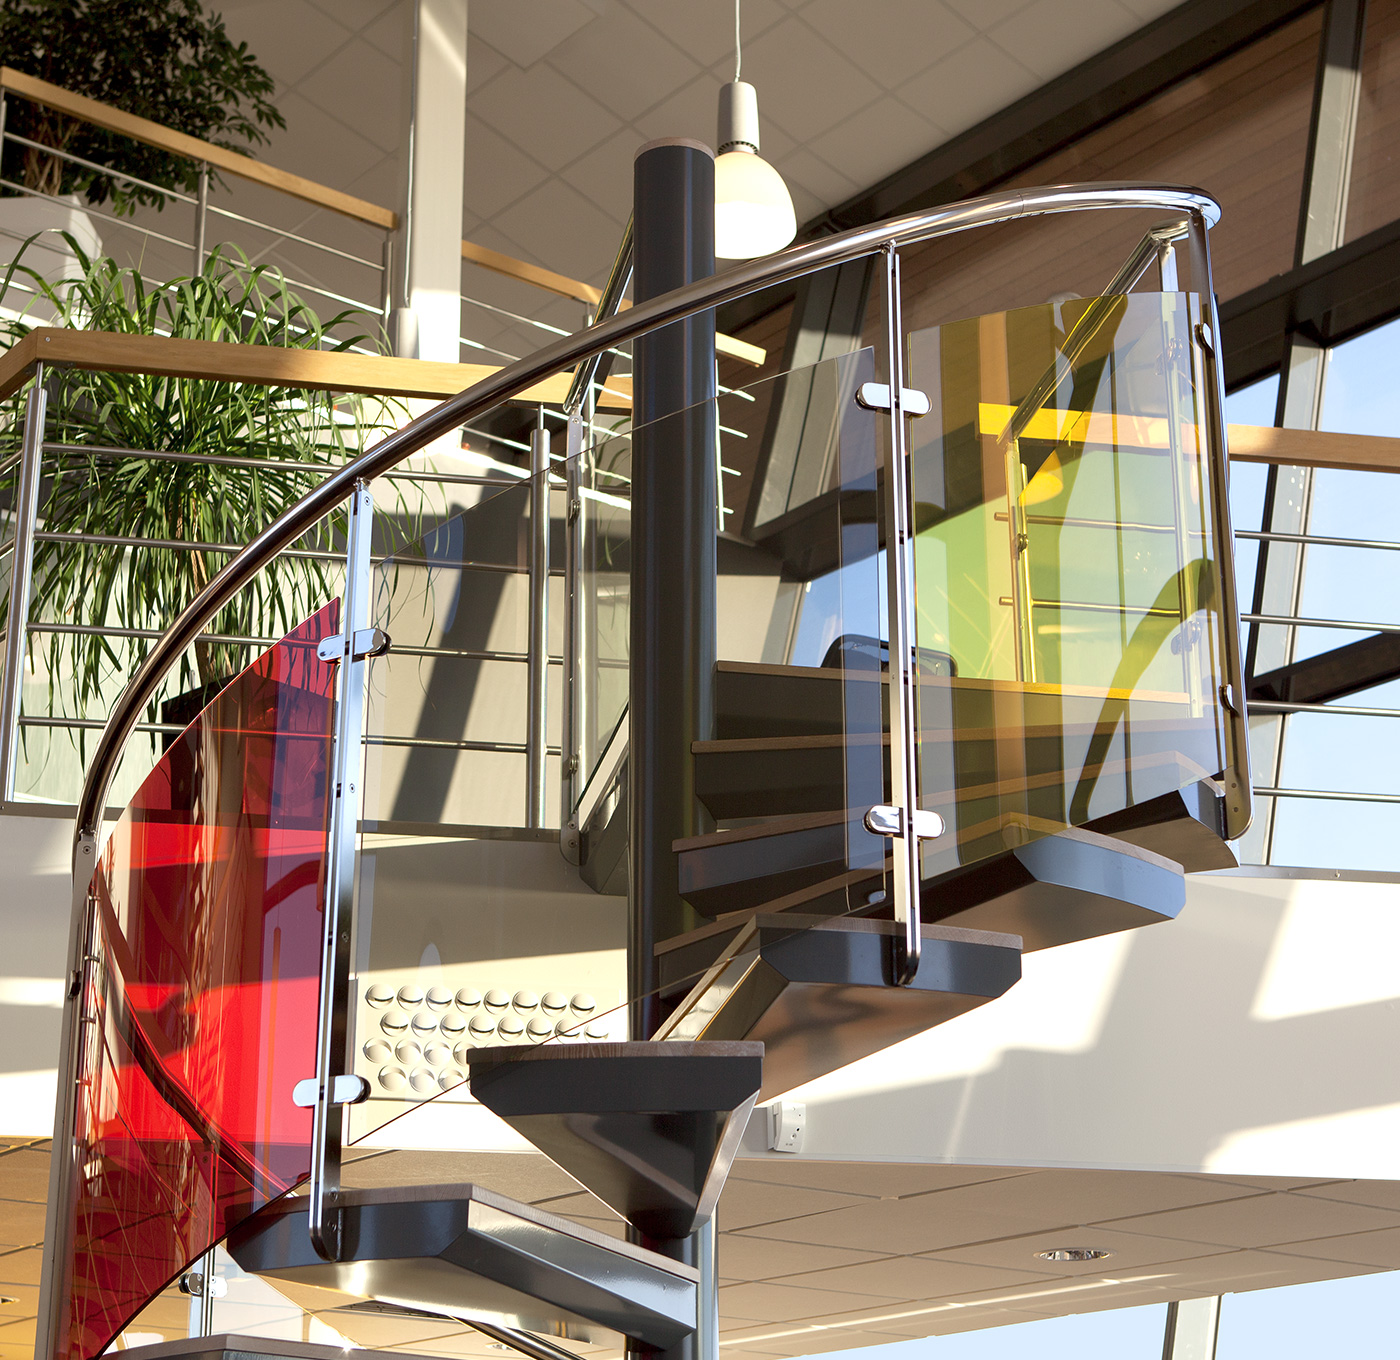 Spiral staircase exclusive indoors with glass railing